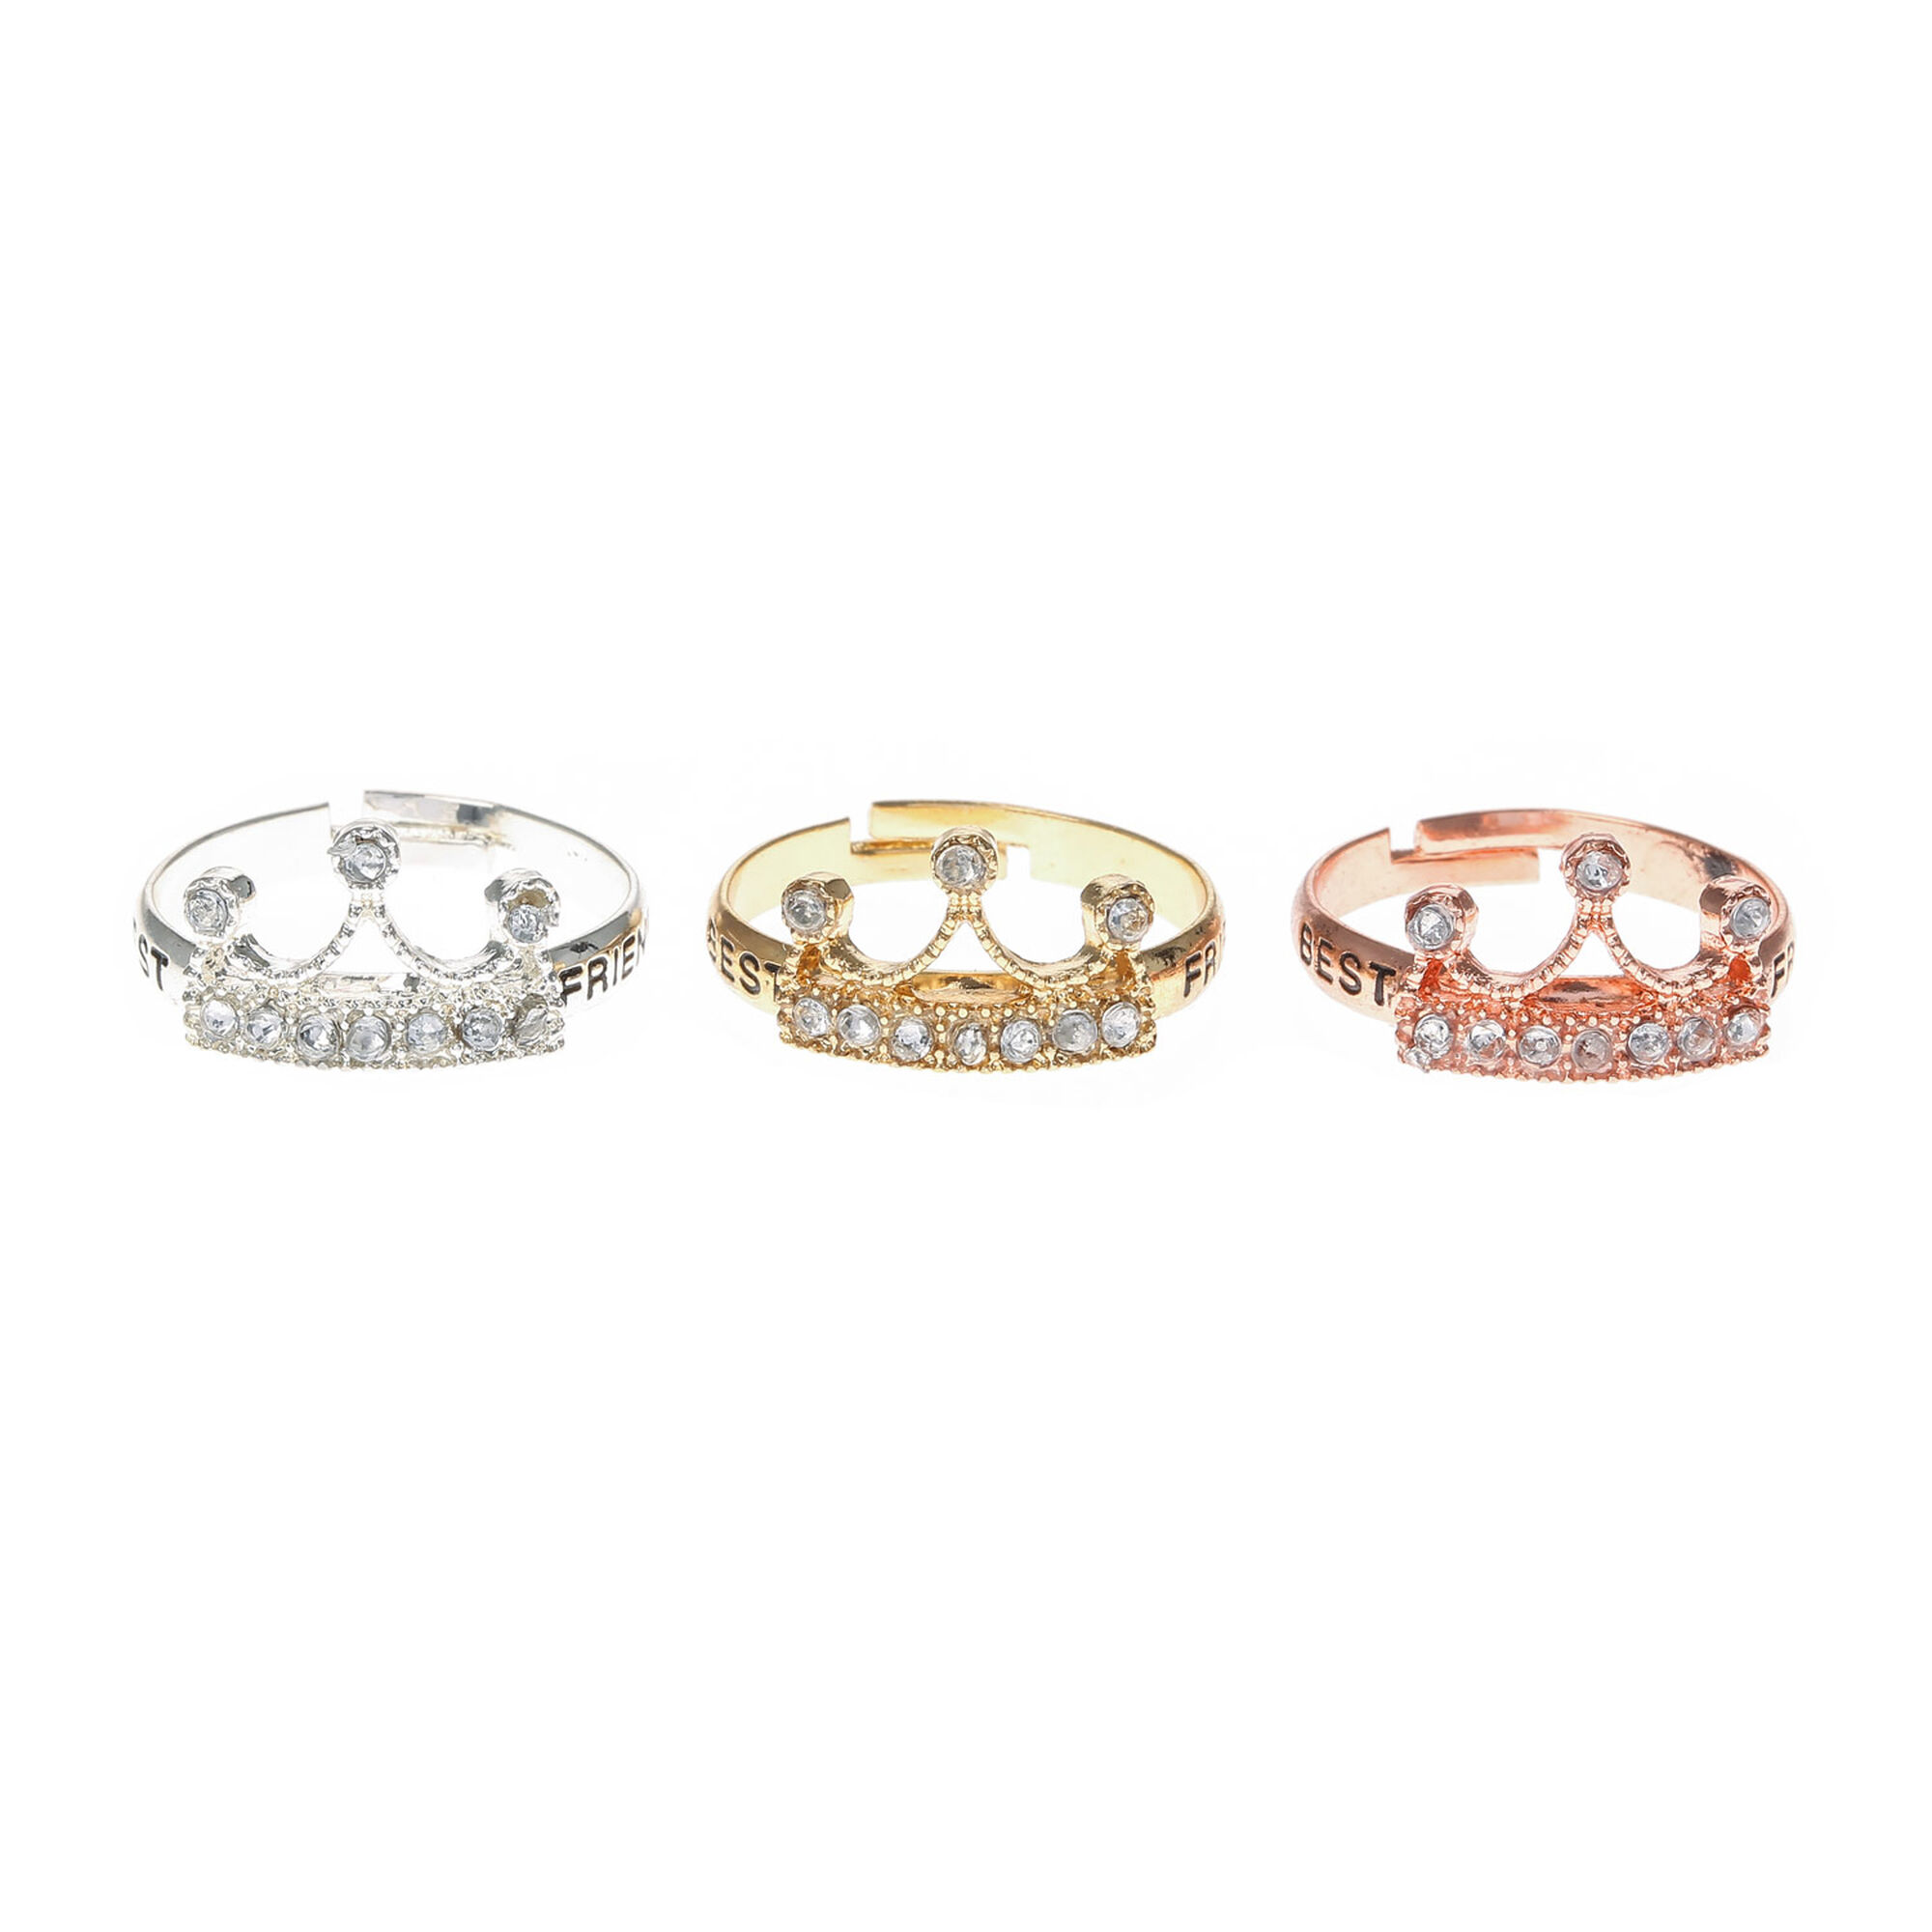 band wedding set beautiful hong friendship rings his haywards home luxury of her rustic artisan ring bronze kong